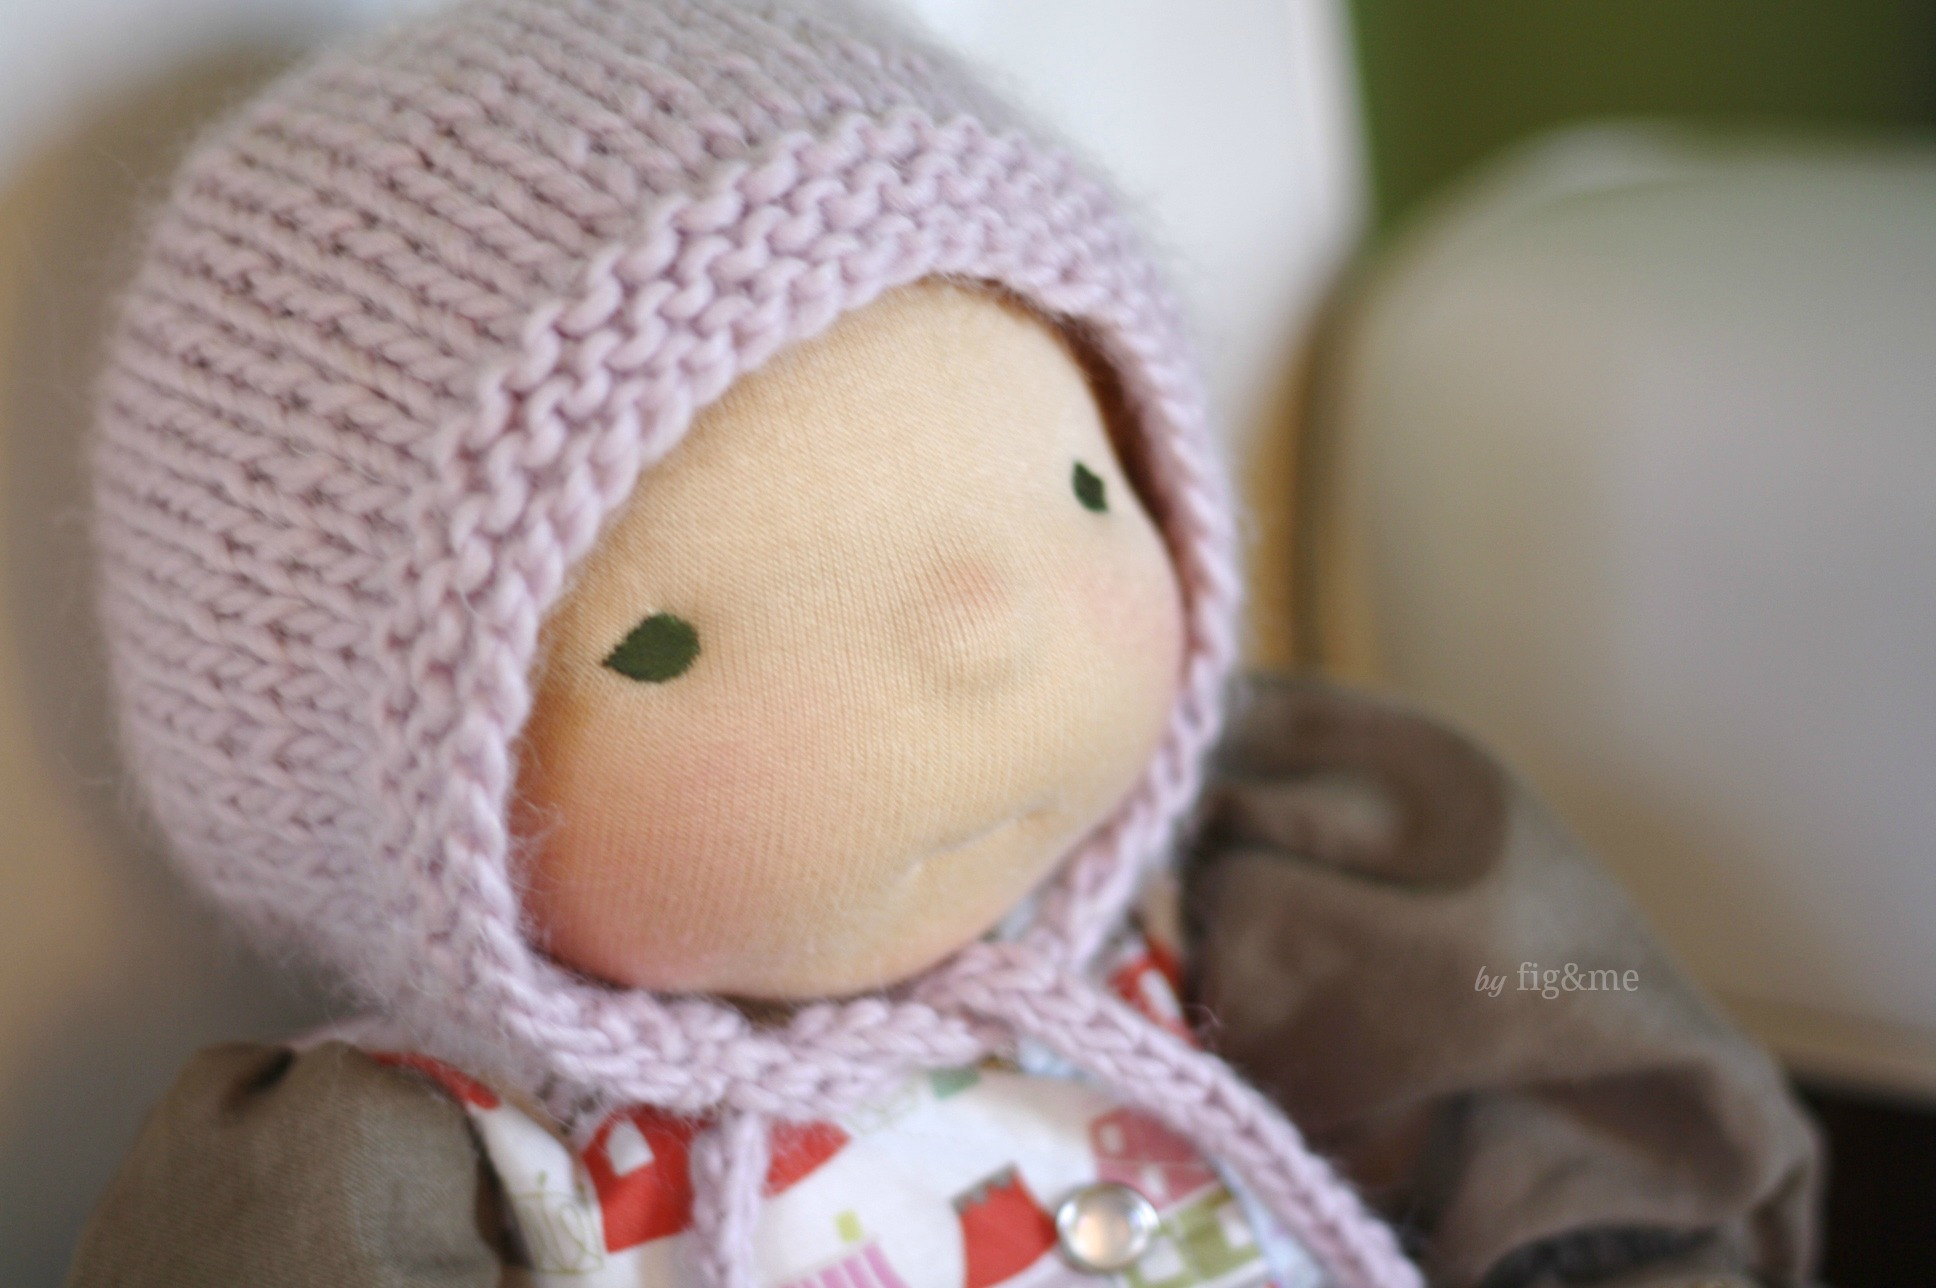 Simply Baby Bonnet, by Fig&me